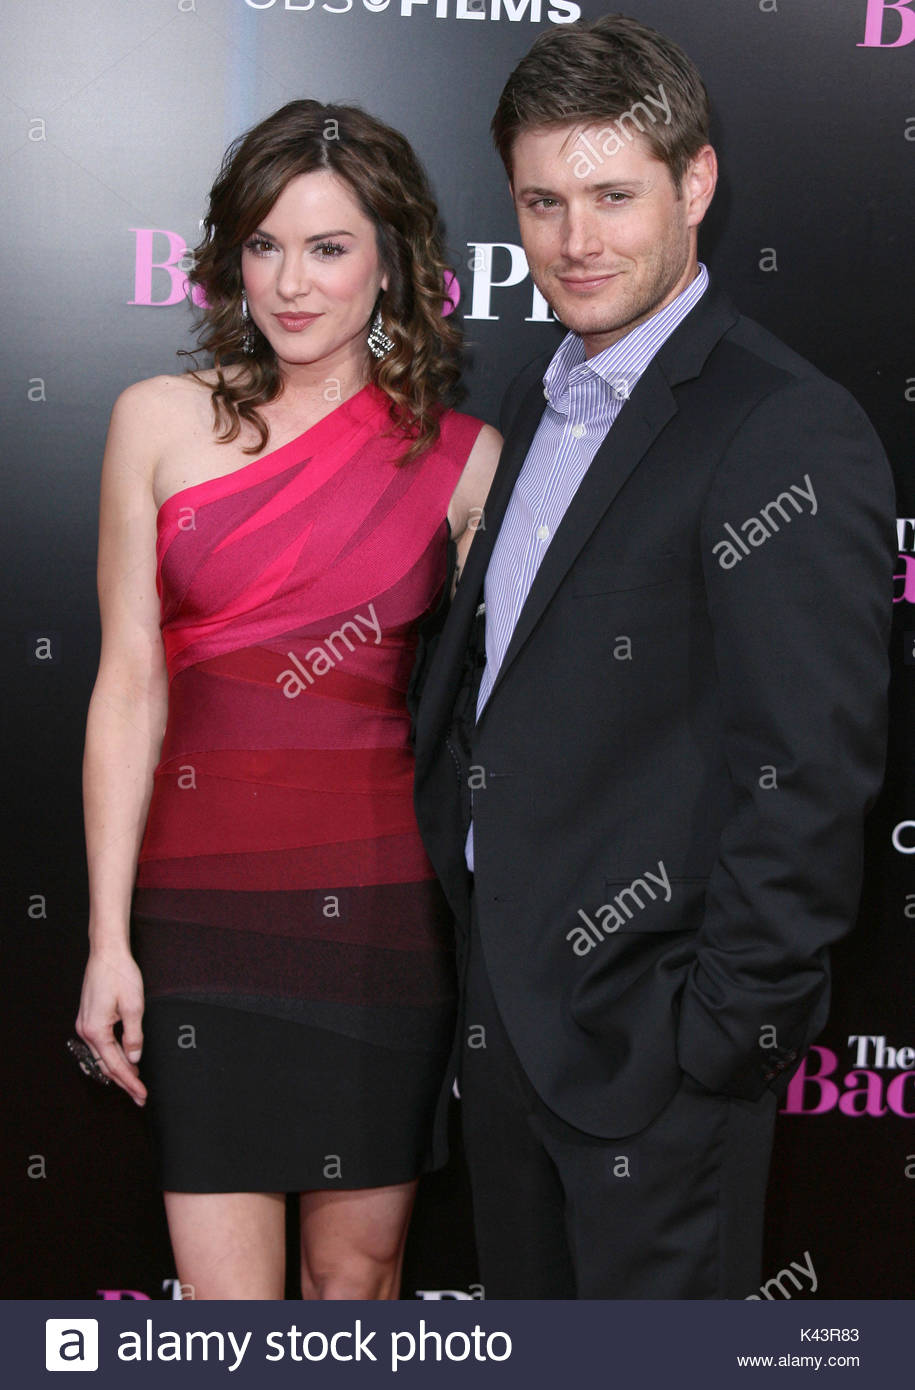 Jensen ackles stock photos jensen ackles stock images alamy danneel harris and jensen ackles the back up plan premiere kristyandbryce Images